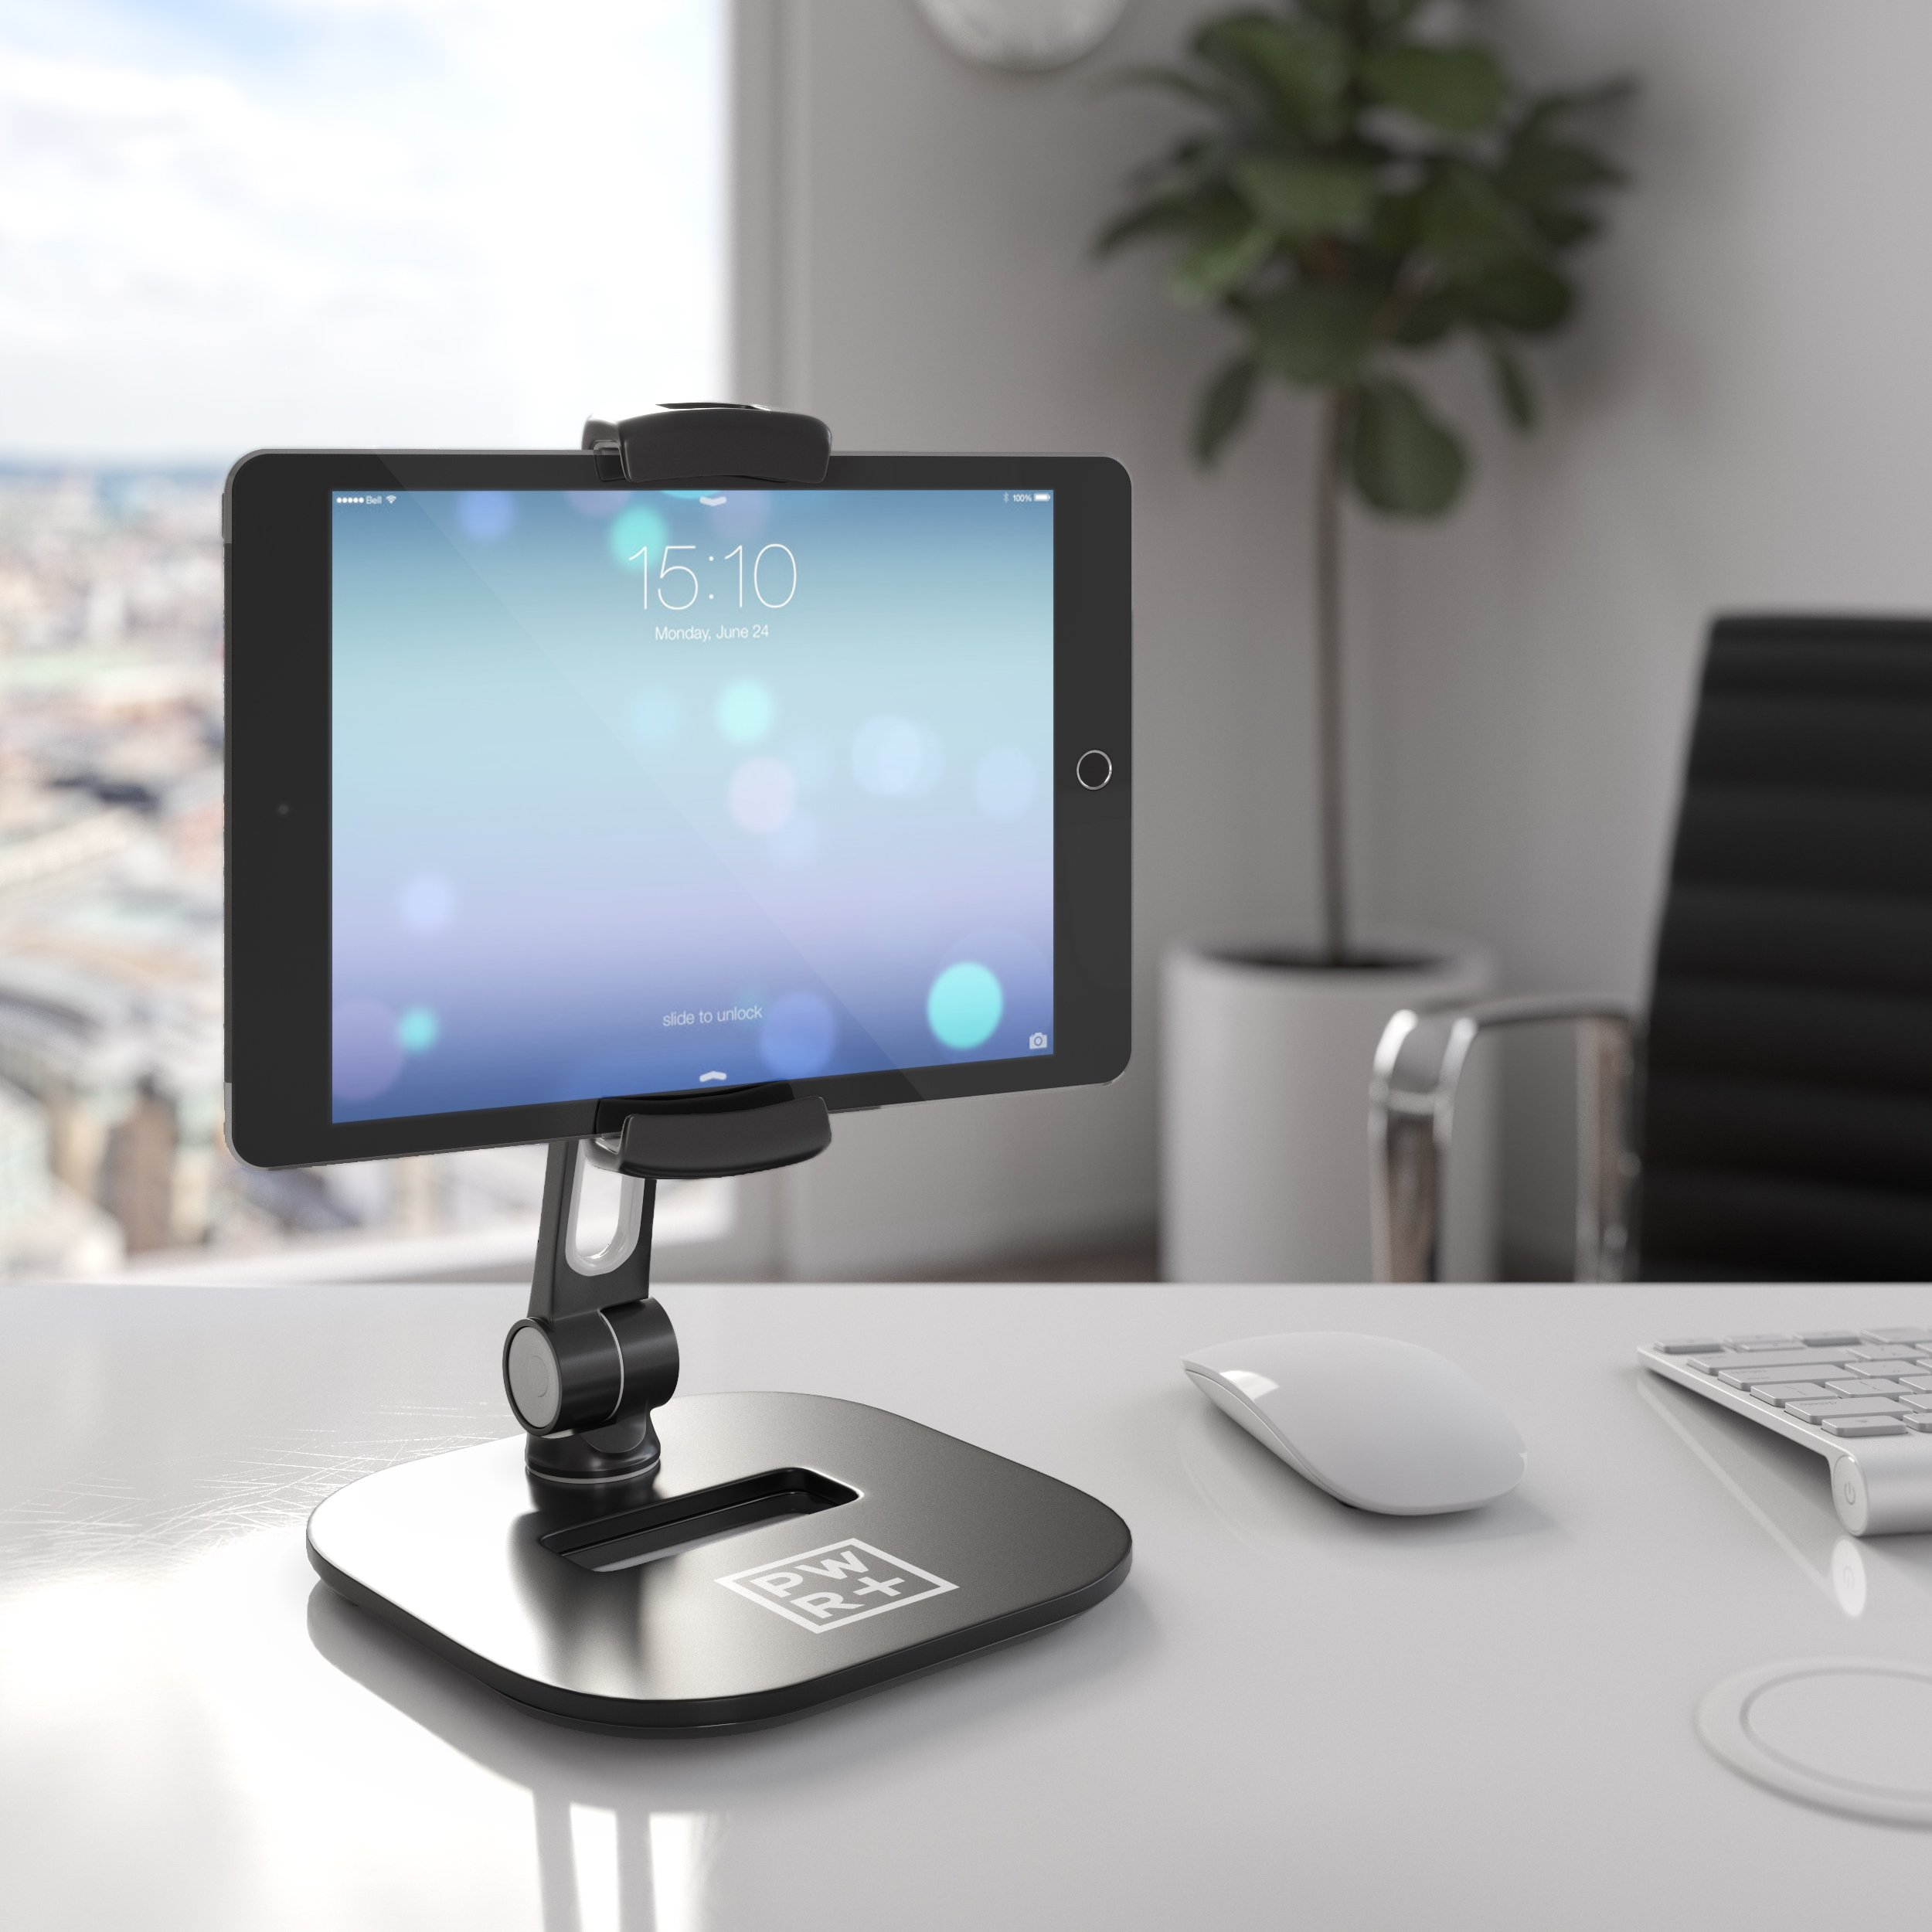 Tablet Stands and Holders Adjustable: Pwr Stylish Tablet Cell Phone Holder 360 degree Swivel Angle Rotation for 4-11'' Tab Phone iPad Samsung Galaxy Perfect POS Kitchen Bedside Office Table Reception by PWR+ (Image #5)